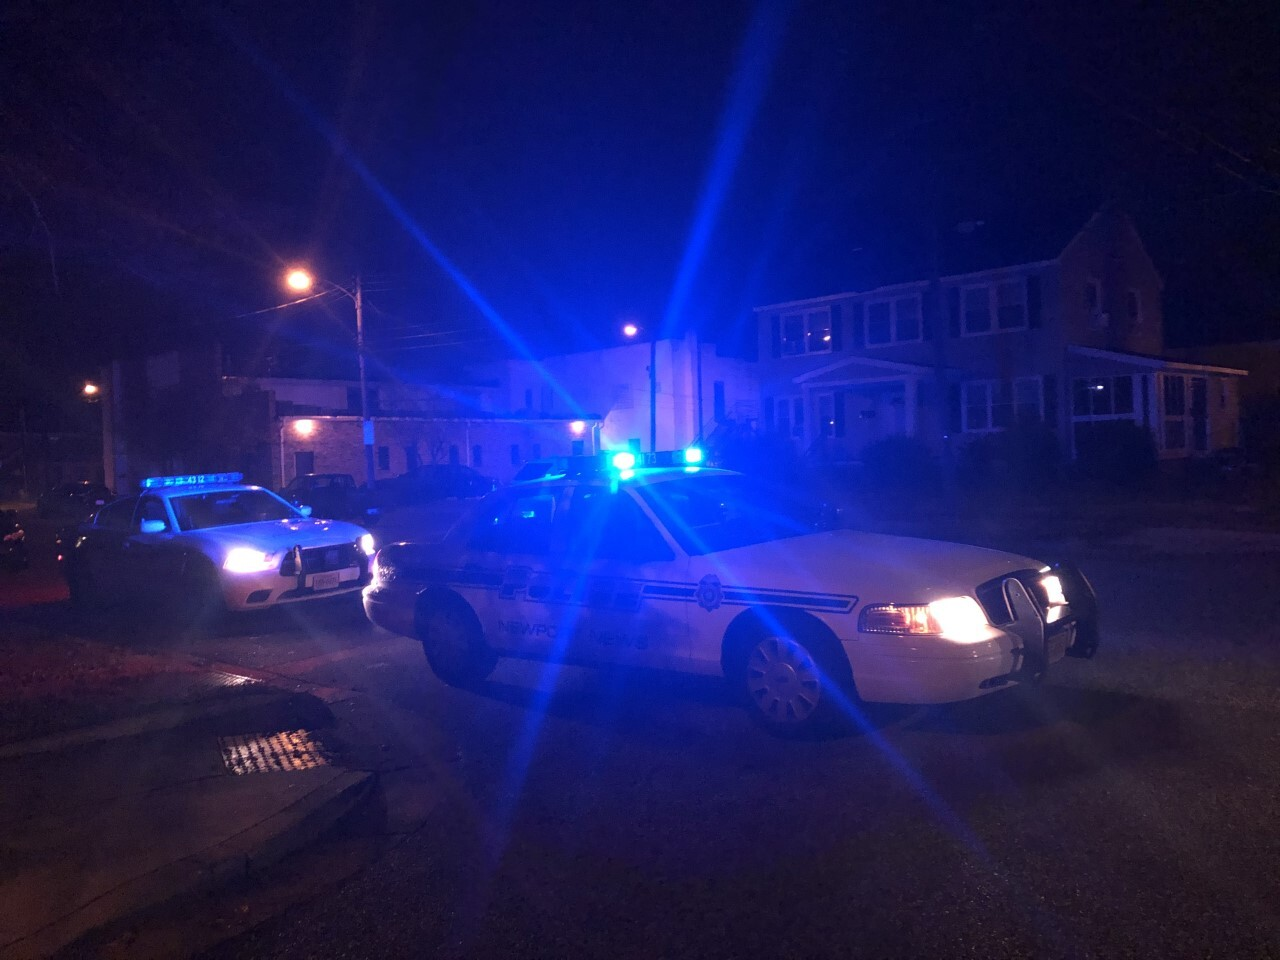 Photos: Police identify victim after being killed in Newport News shooting